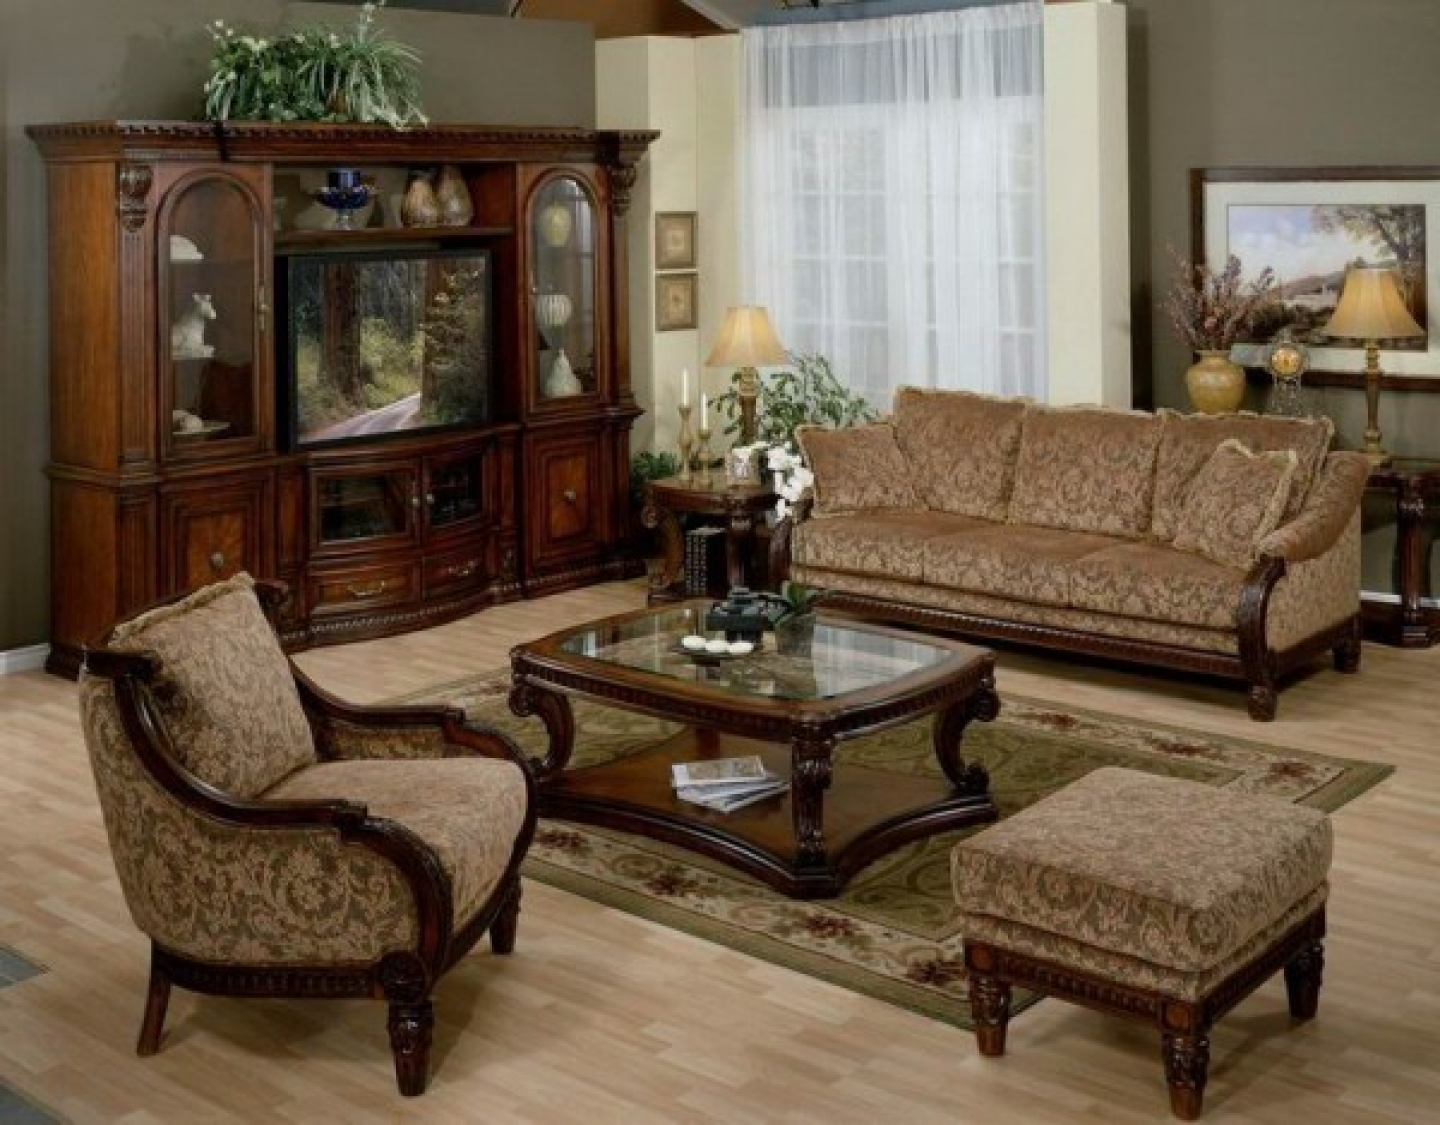 Traditional Wooden Sofa Set Designs Couch Traditional Sofas And Intended For Traditional Sofas And Chairs (Image 15 of 15)